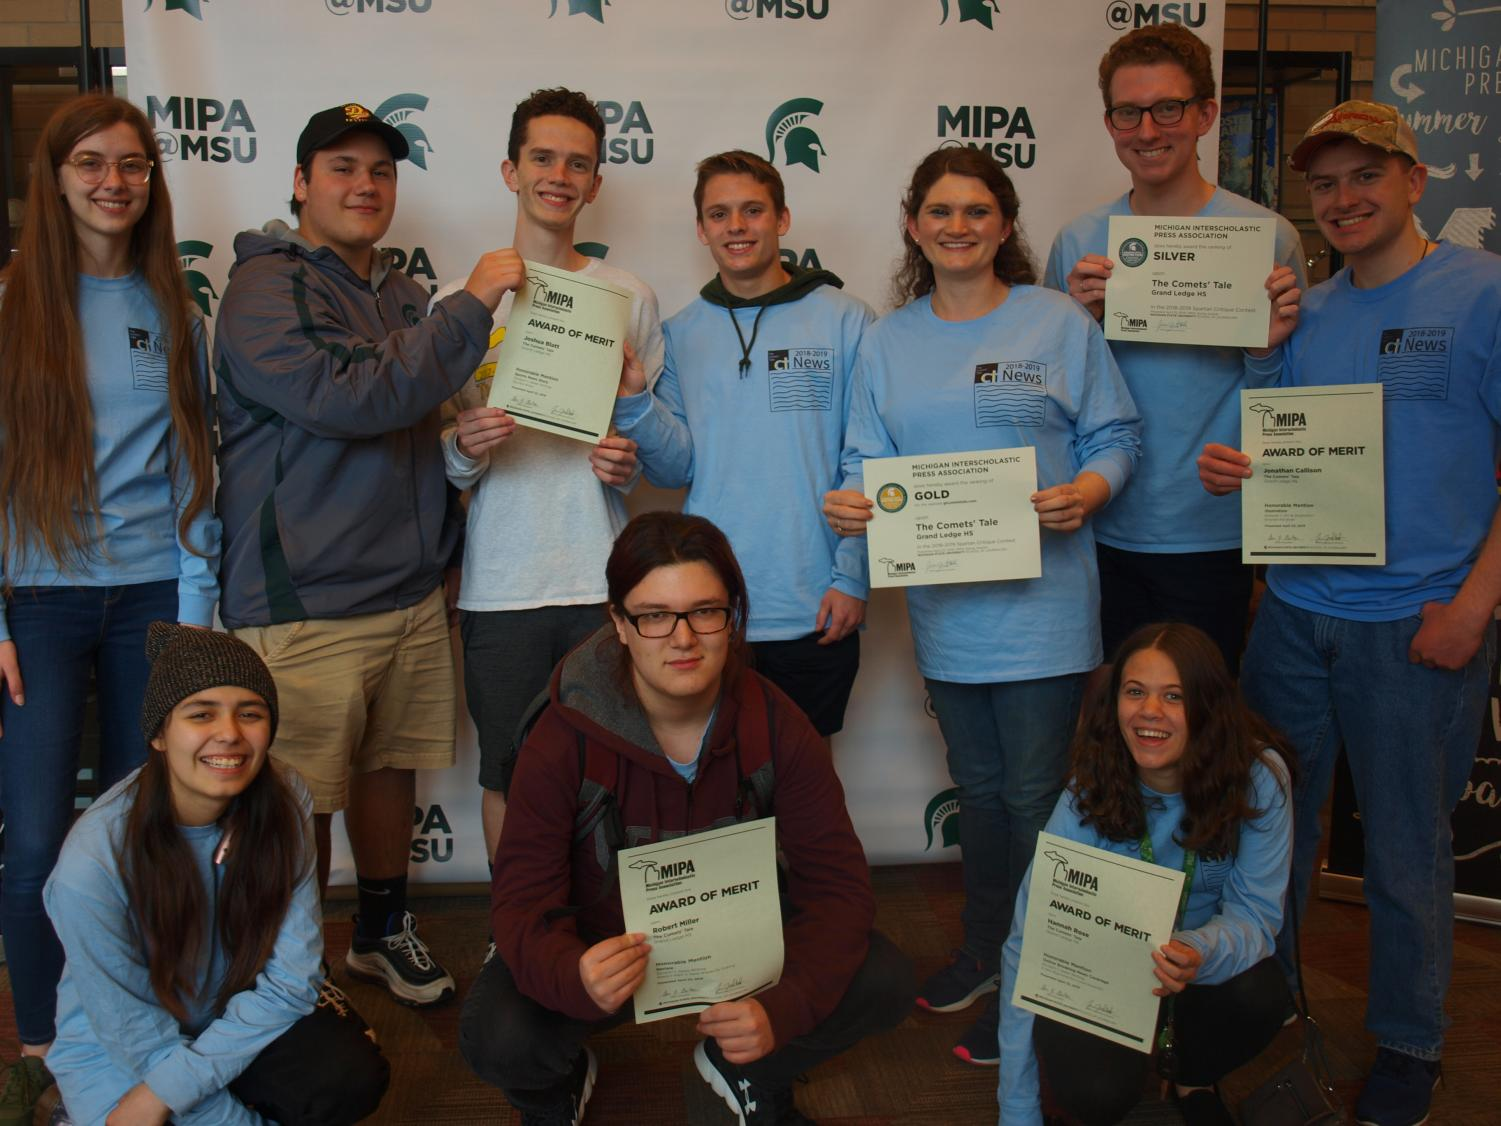 The Comets' Tale staff poses with their Honorable Mention certificates and Silver and Gold Medal certificates for the newspaper and website. The Comets' Tale attended the event on April 23 at the Lansing Center.